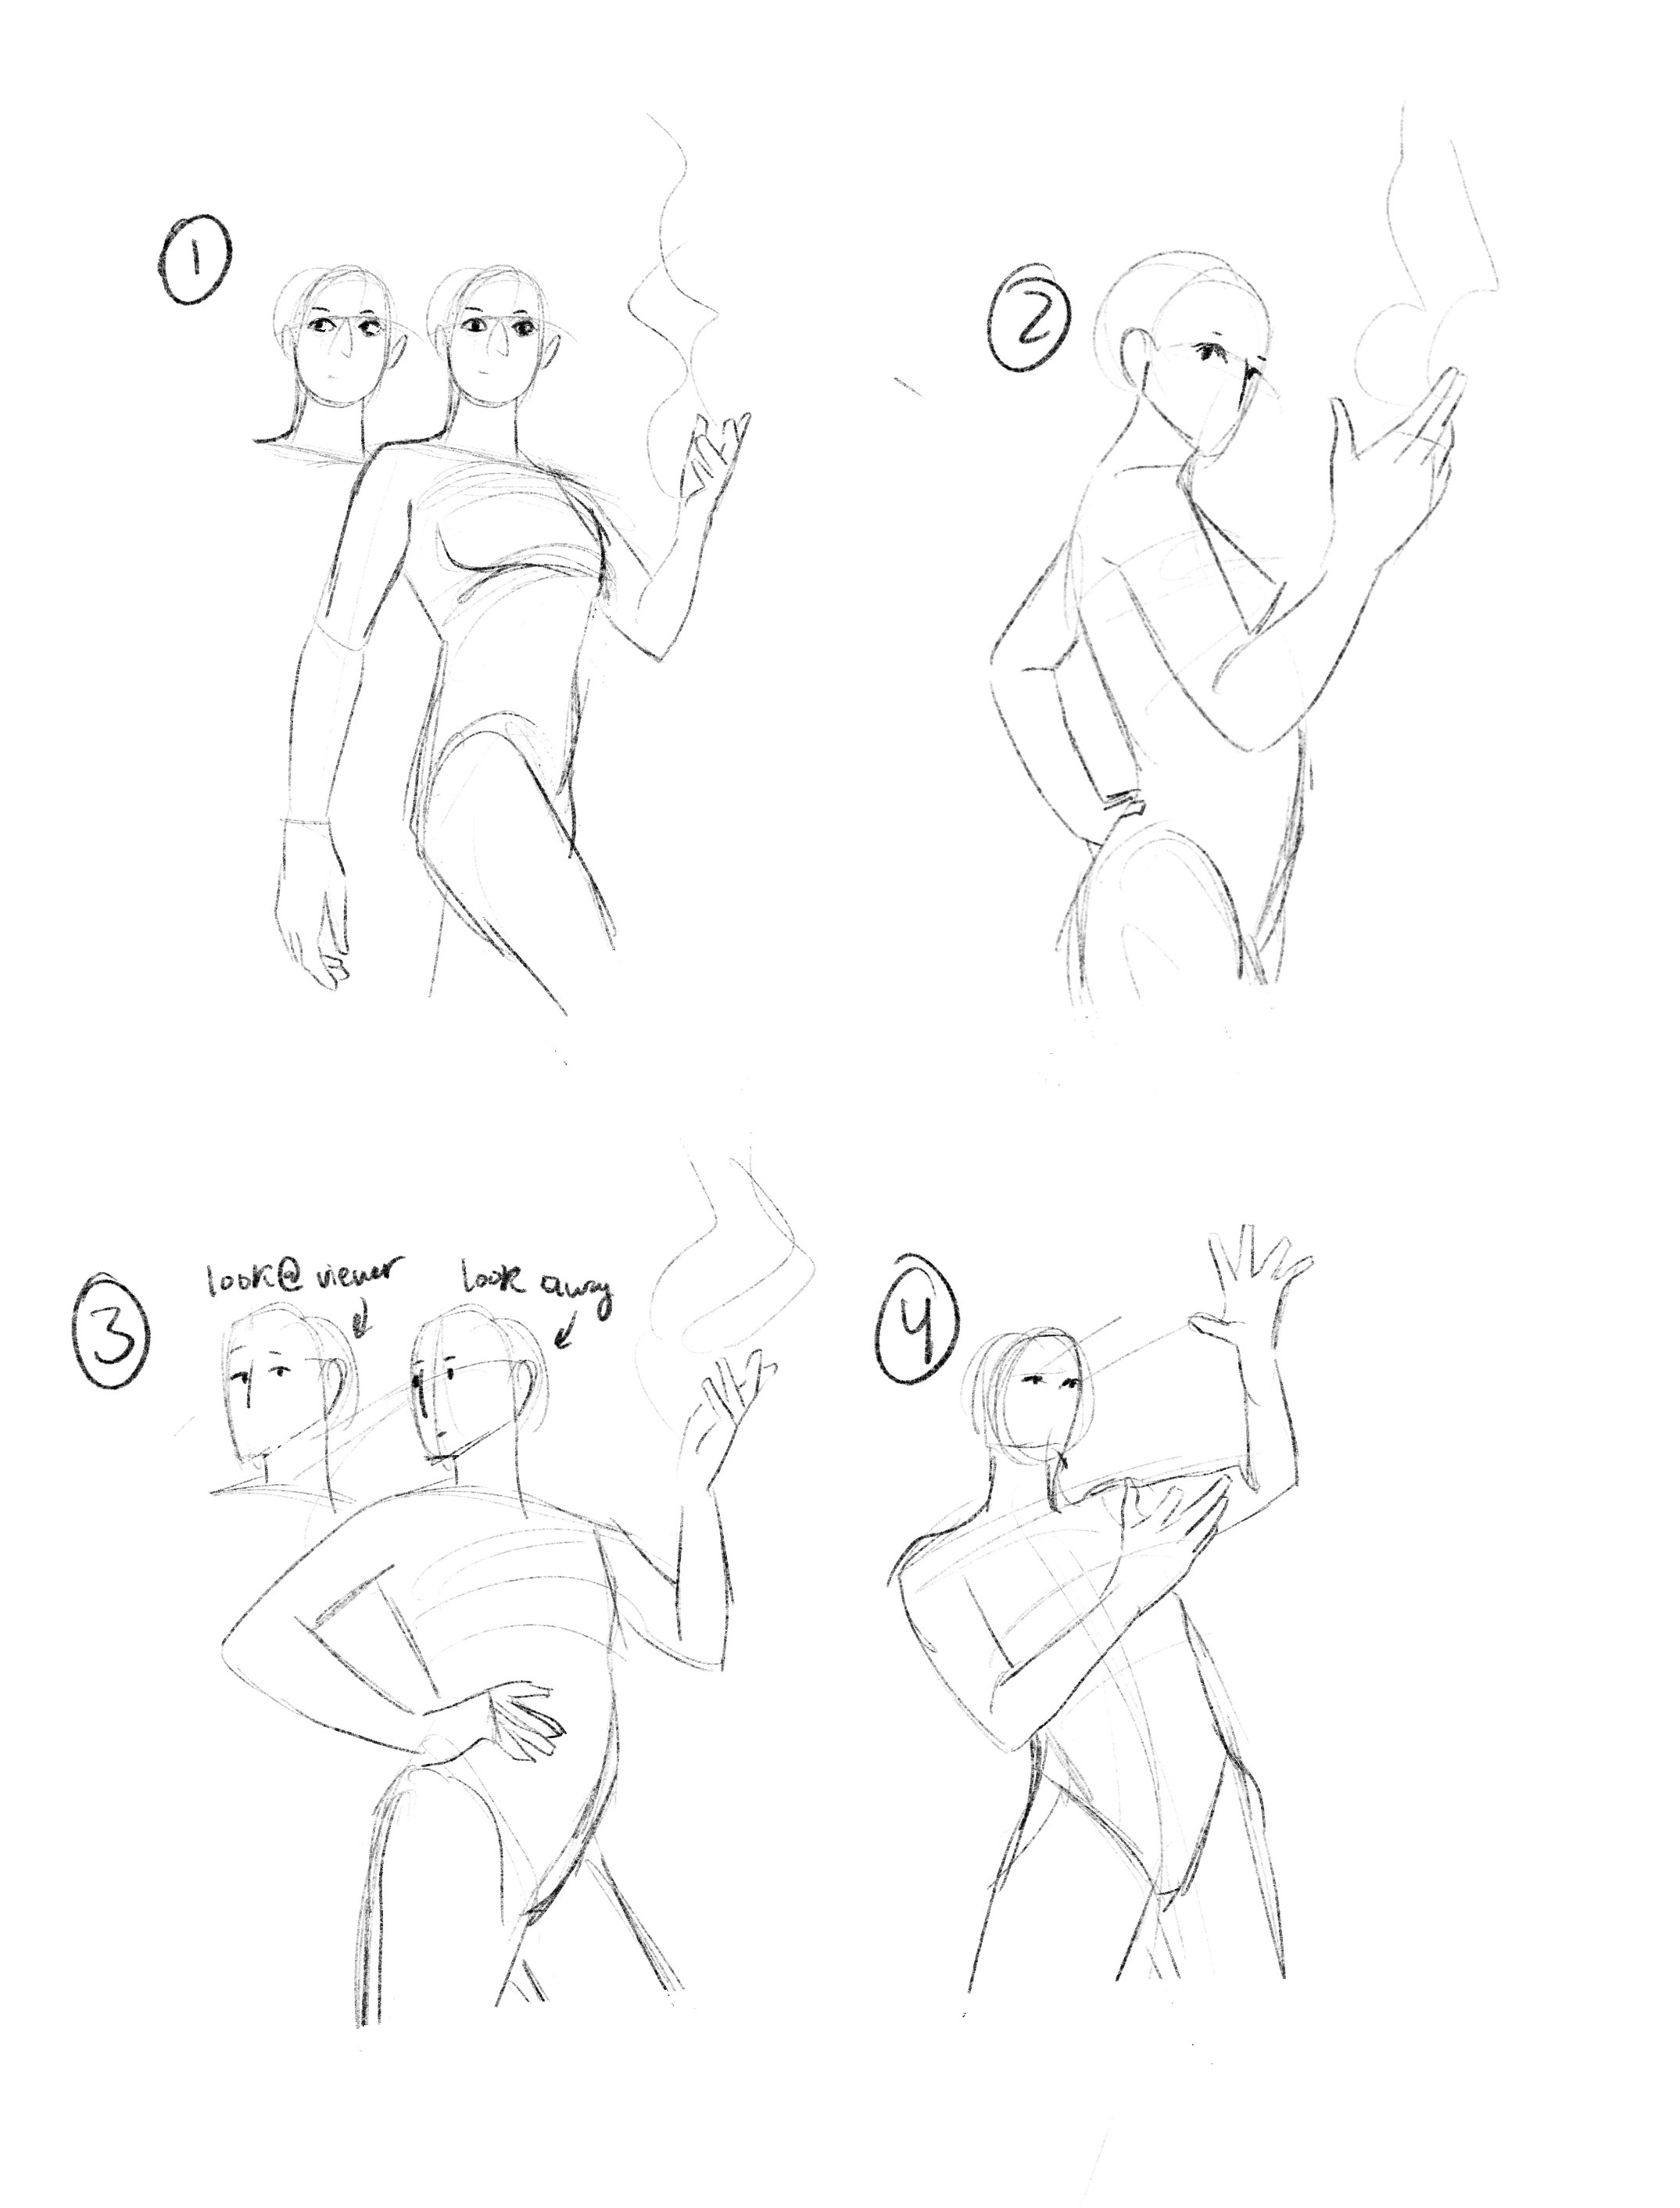 4 different poses I sent to the client. He ended up selecting number 2